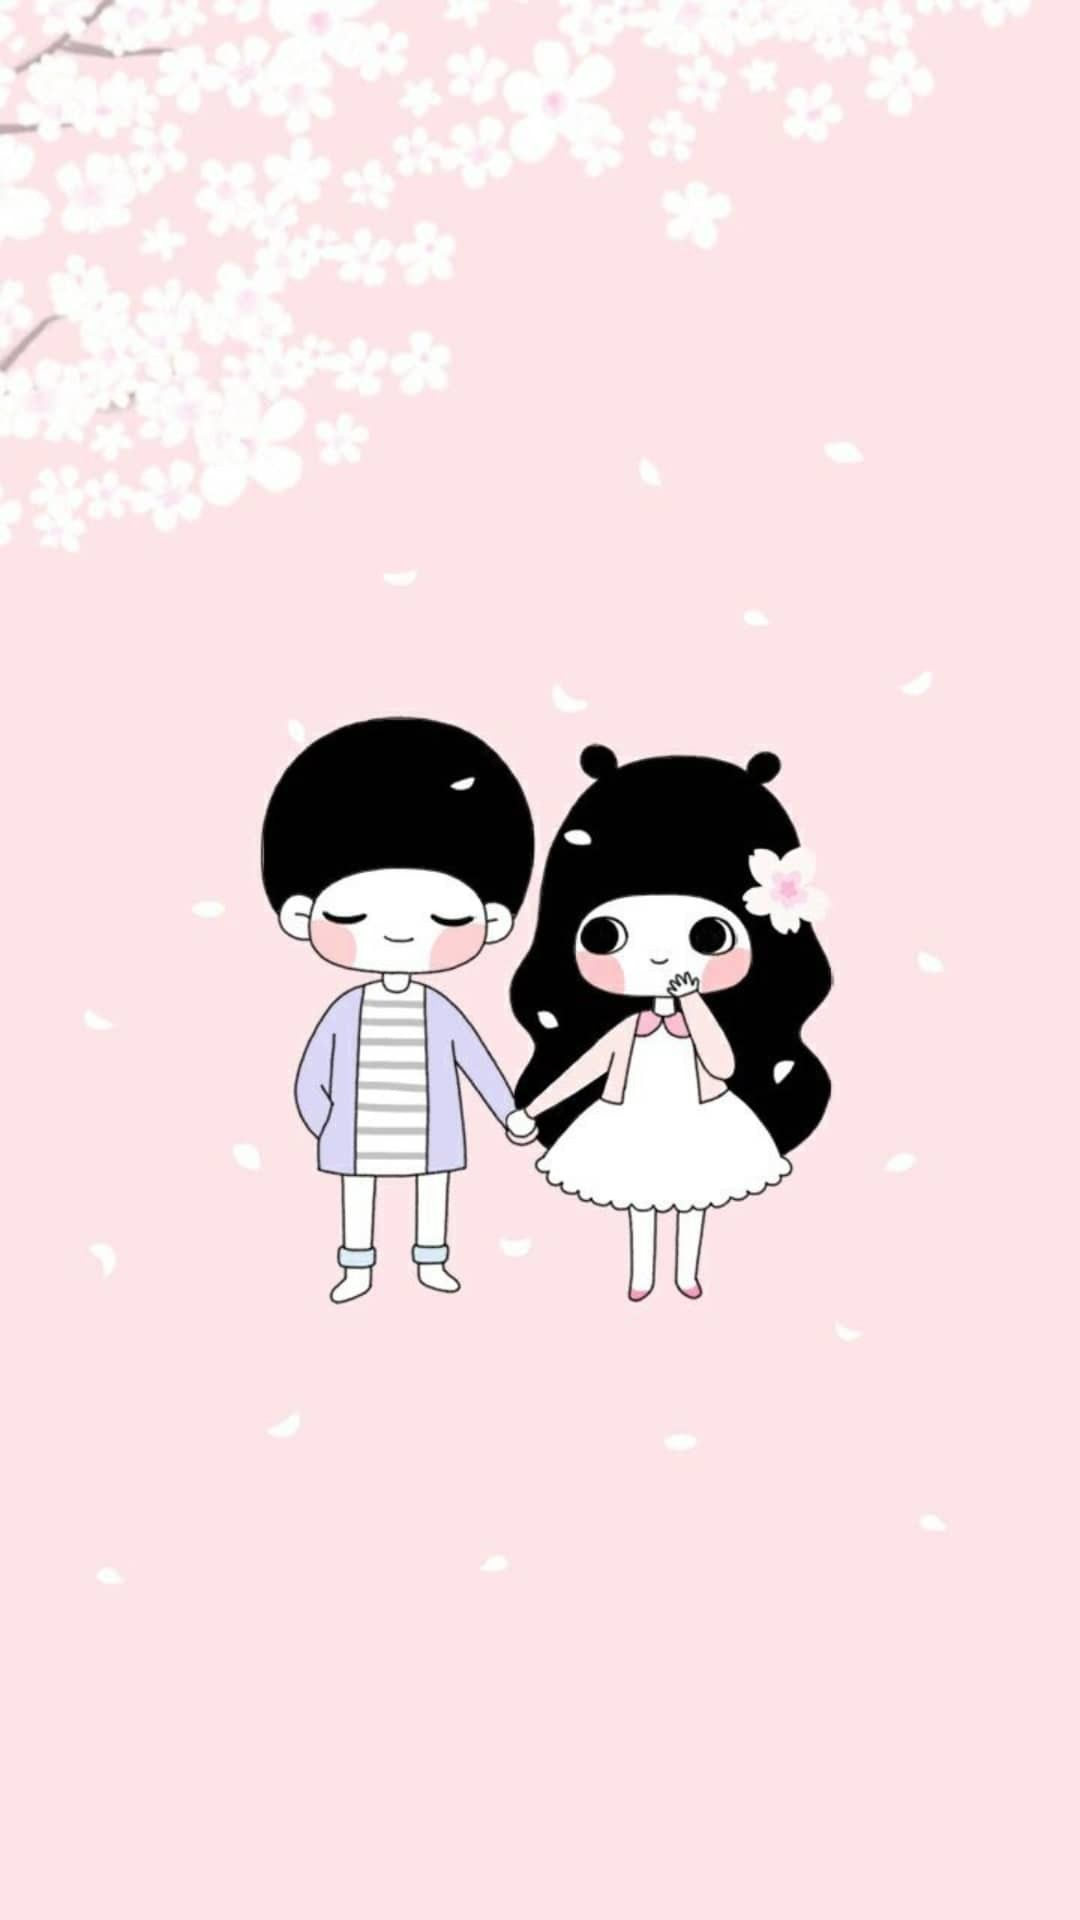 Pin By Teena On Anime Cute Wallpapers Love Wallpaper Love